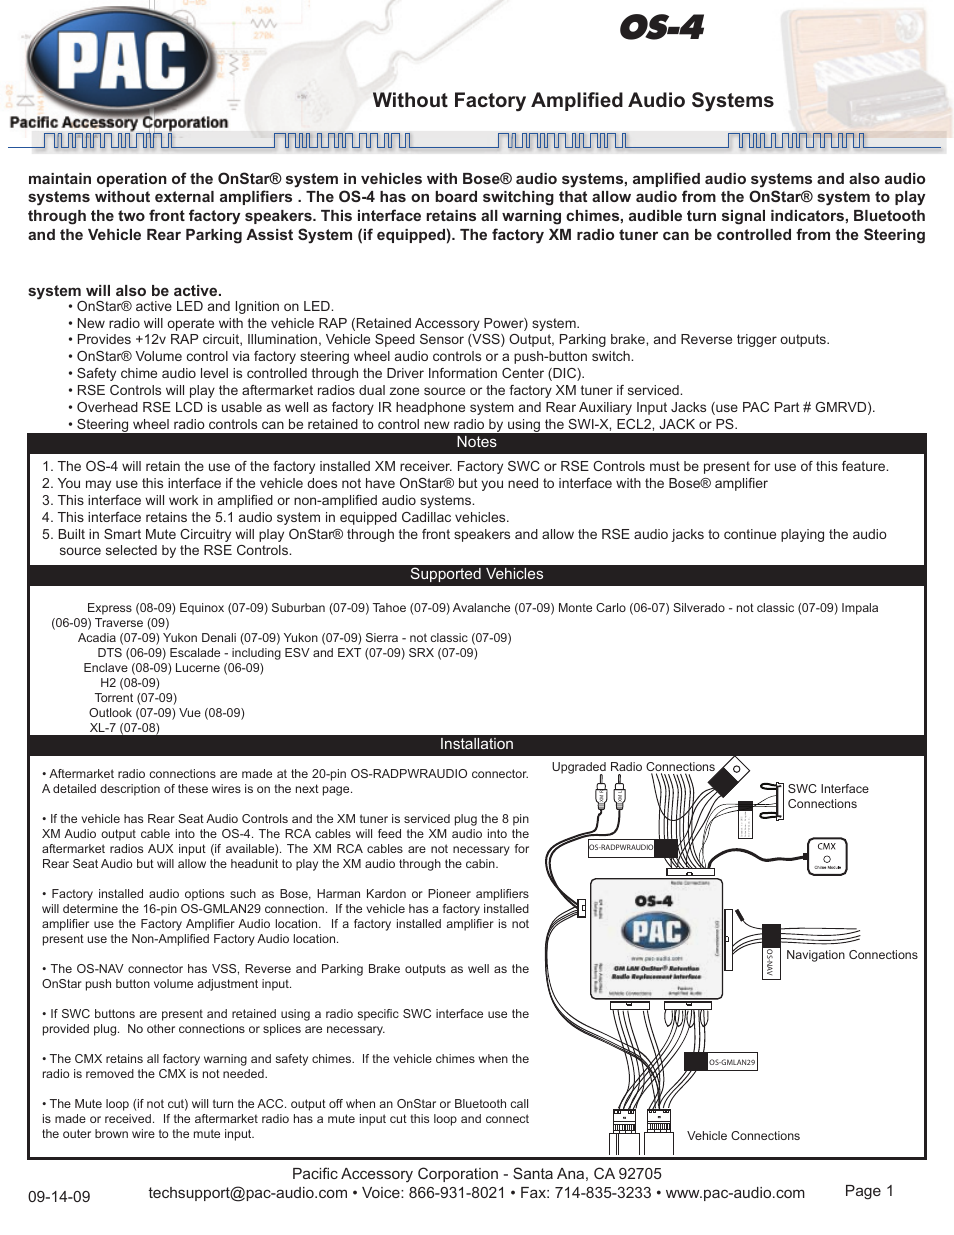 pac os 4 page1 pac os 4 user manual 4 pages pac os-1 wiring diagram at gsmportal.co